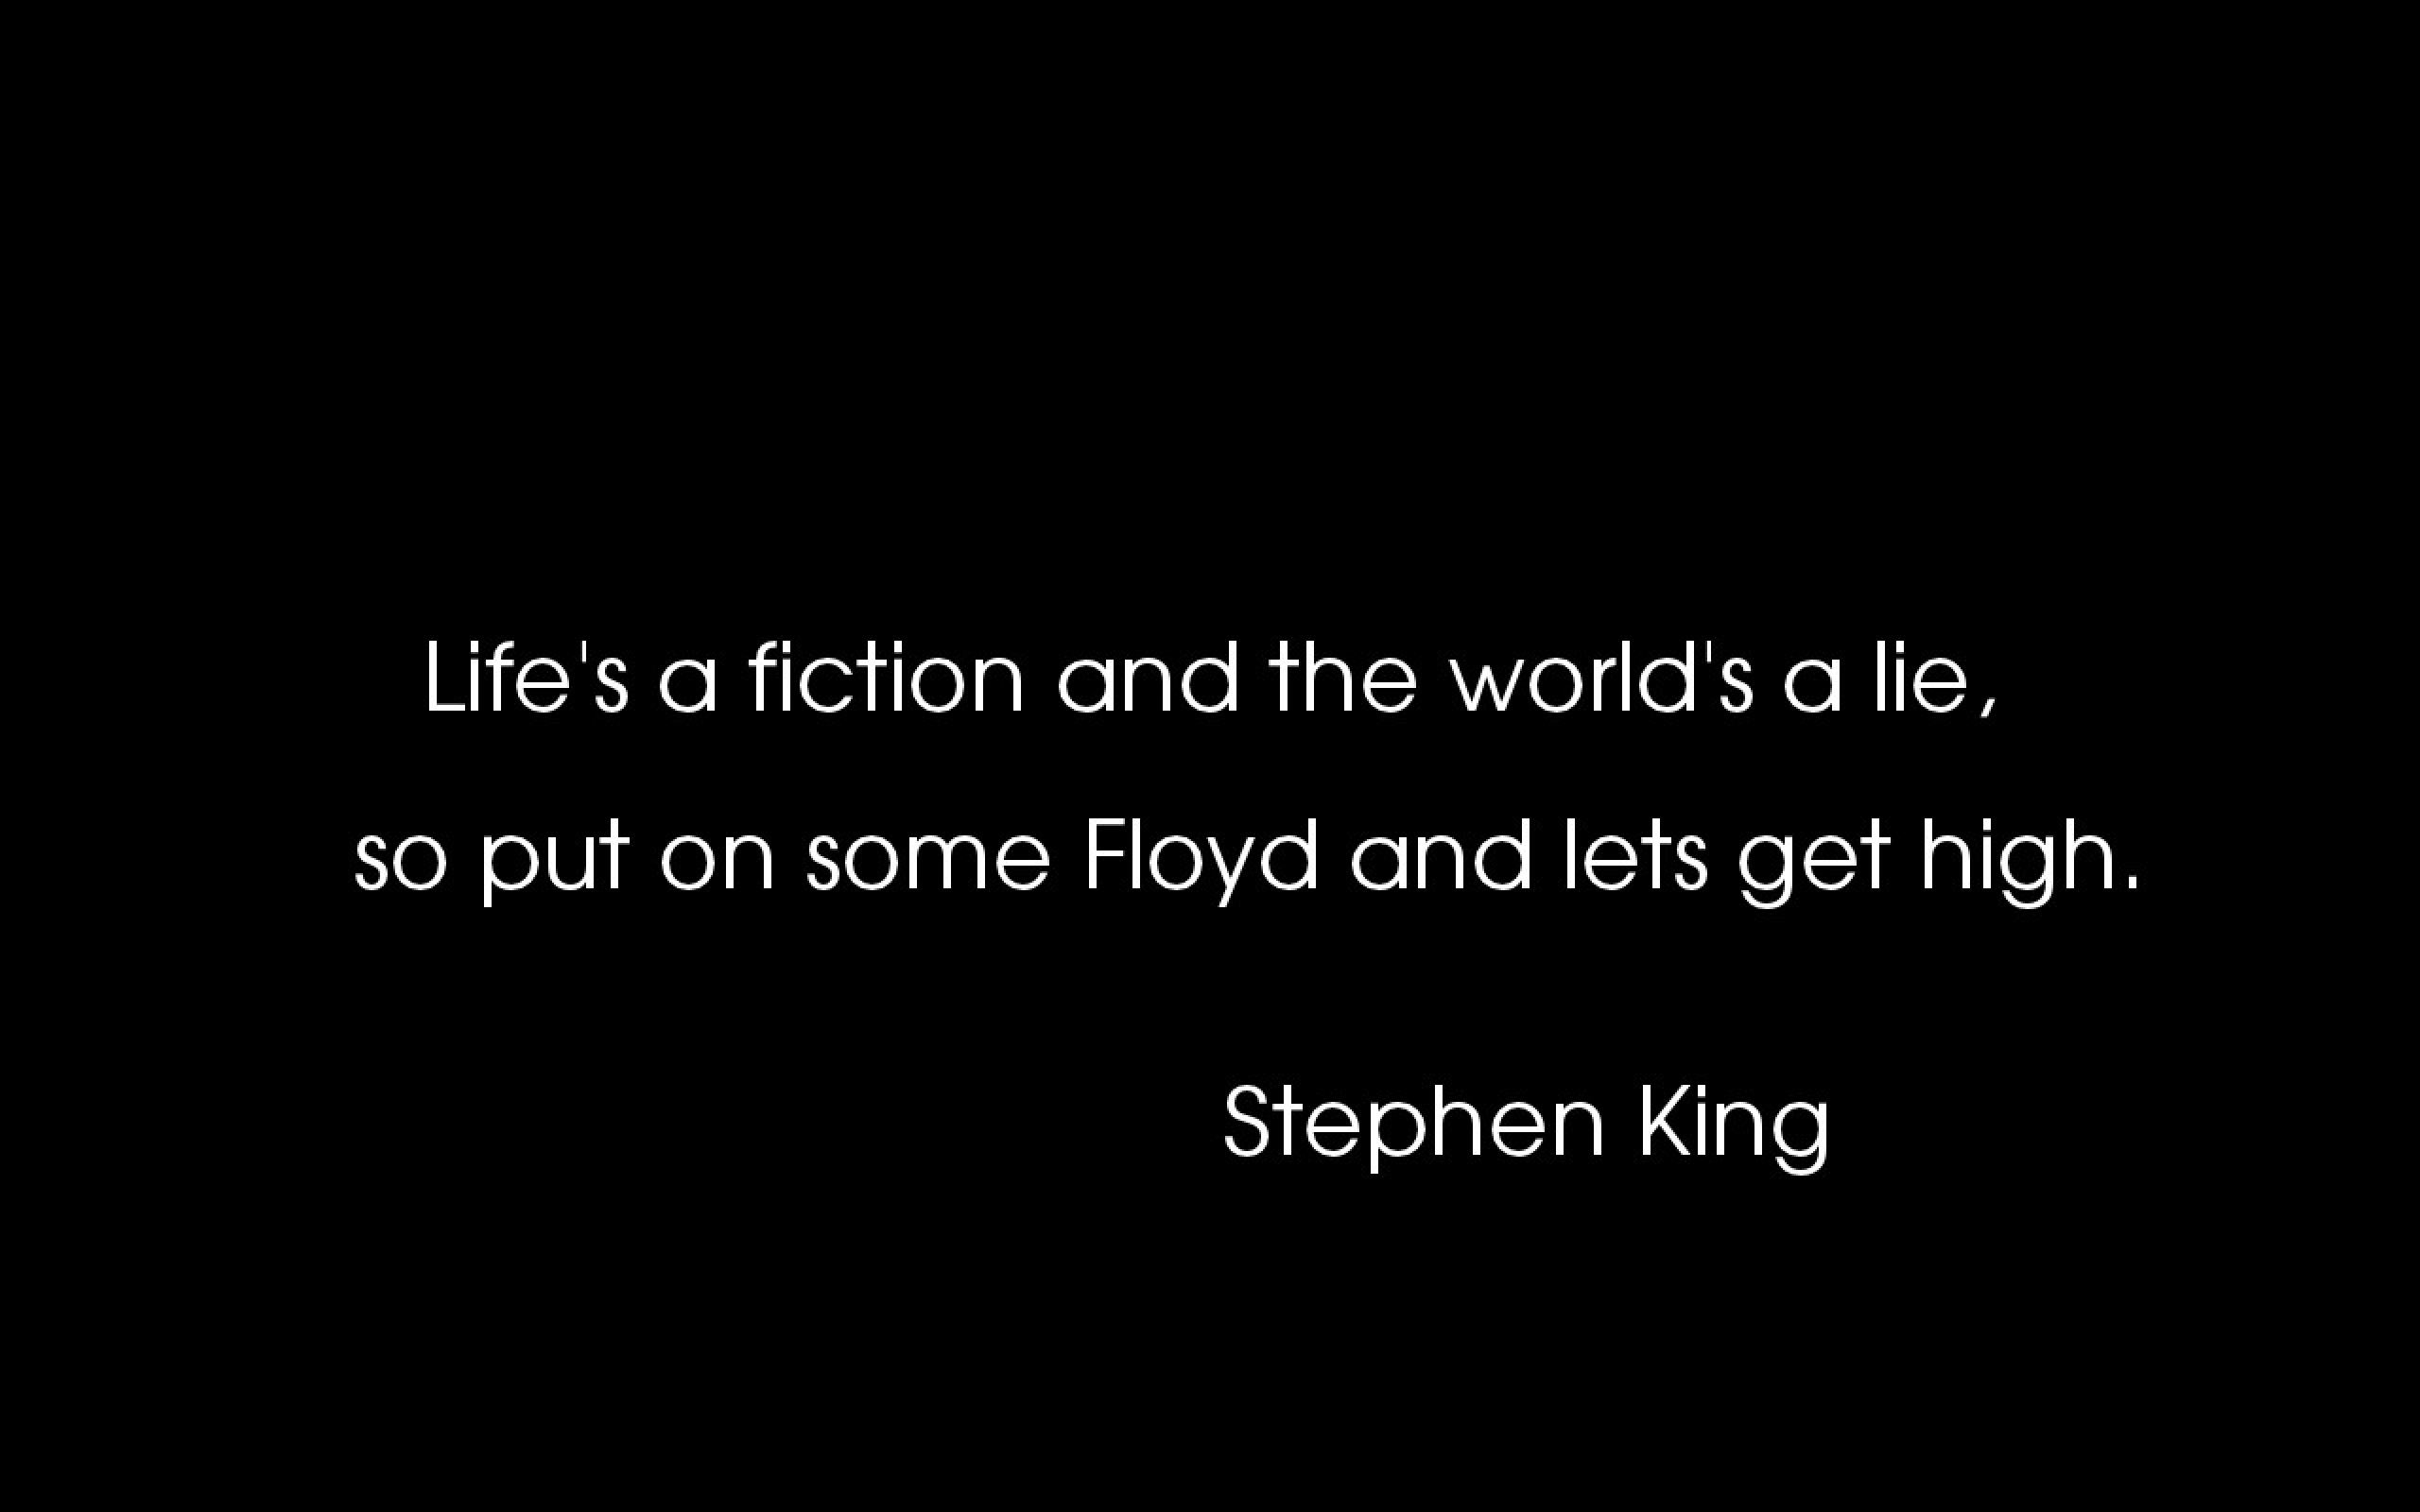 Stephen King Quotes 5 High Resolution Wallpaper